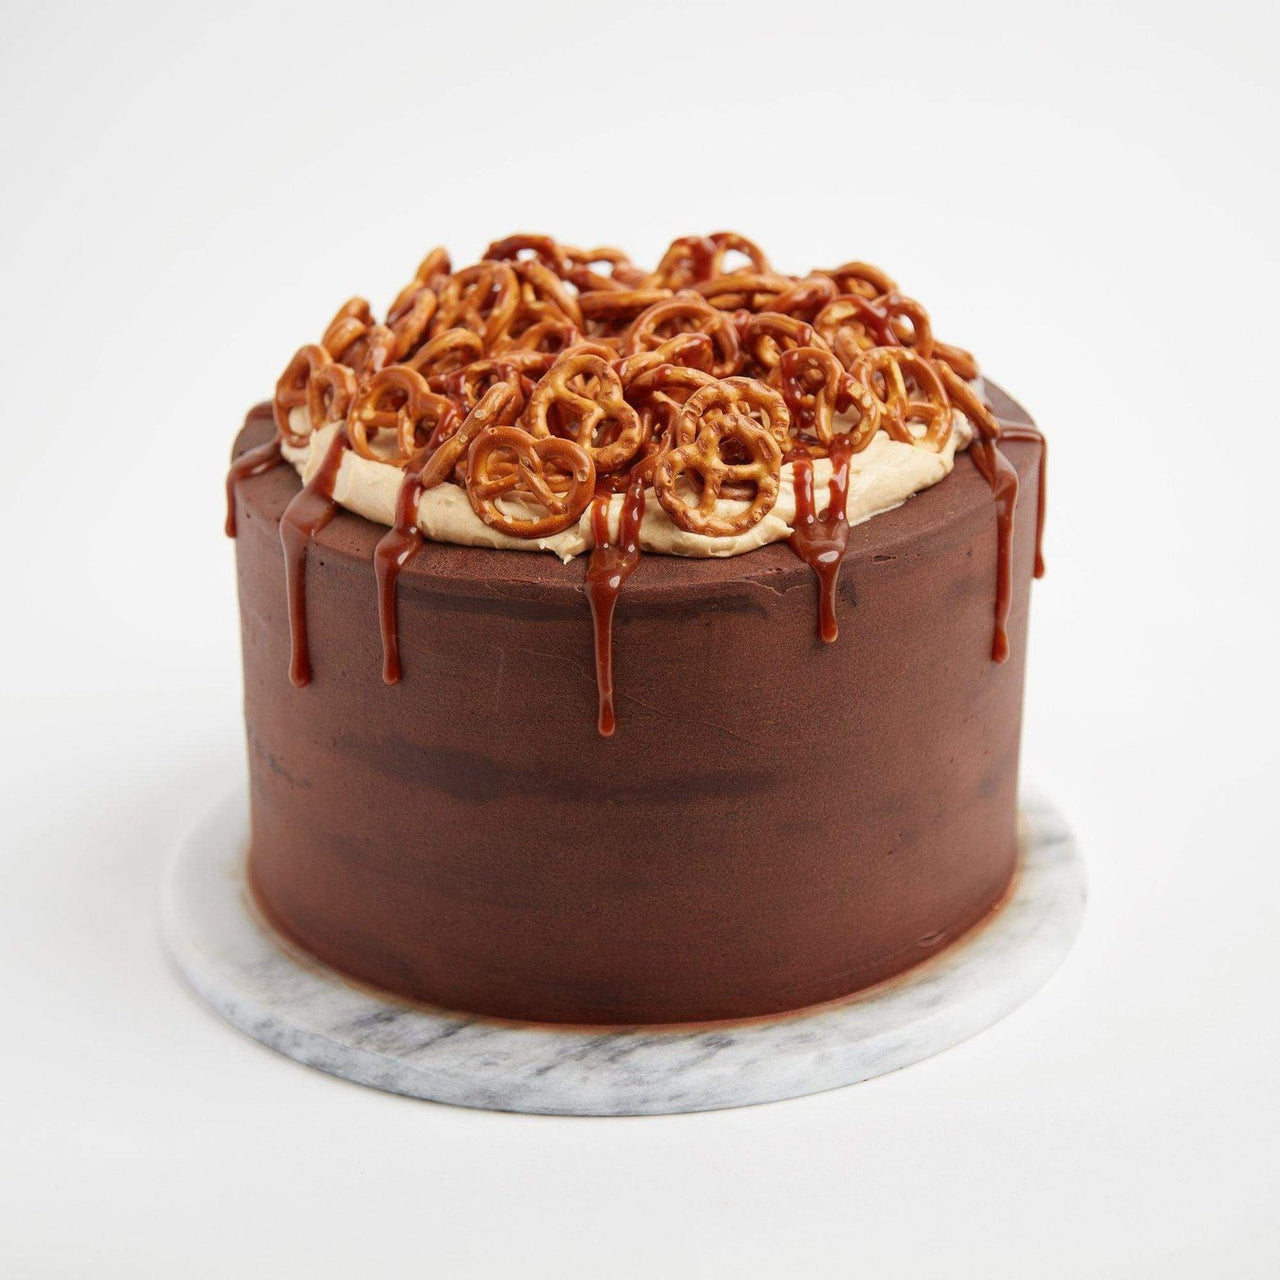 Salted Caramel Pretzel Cake by Crumbs & Doilies